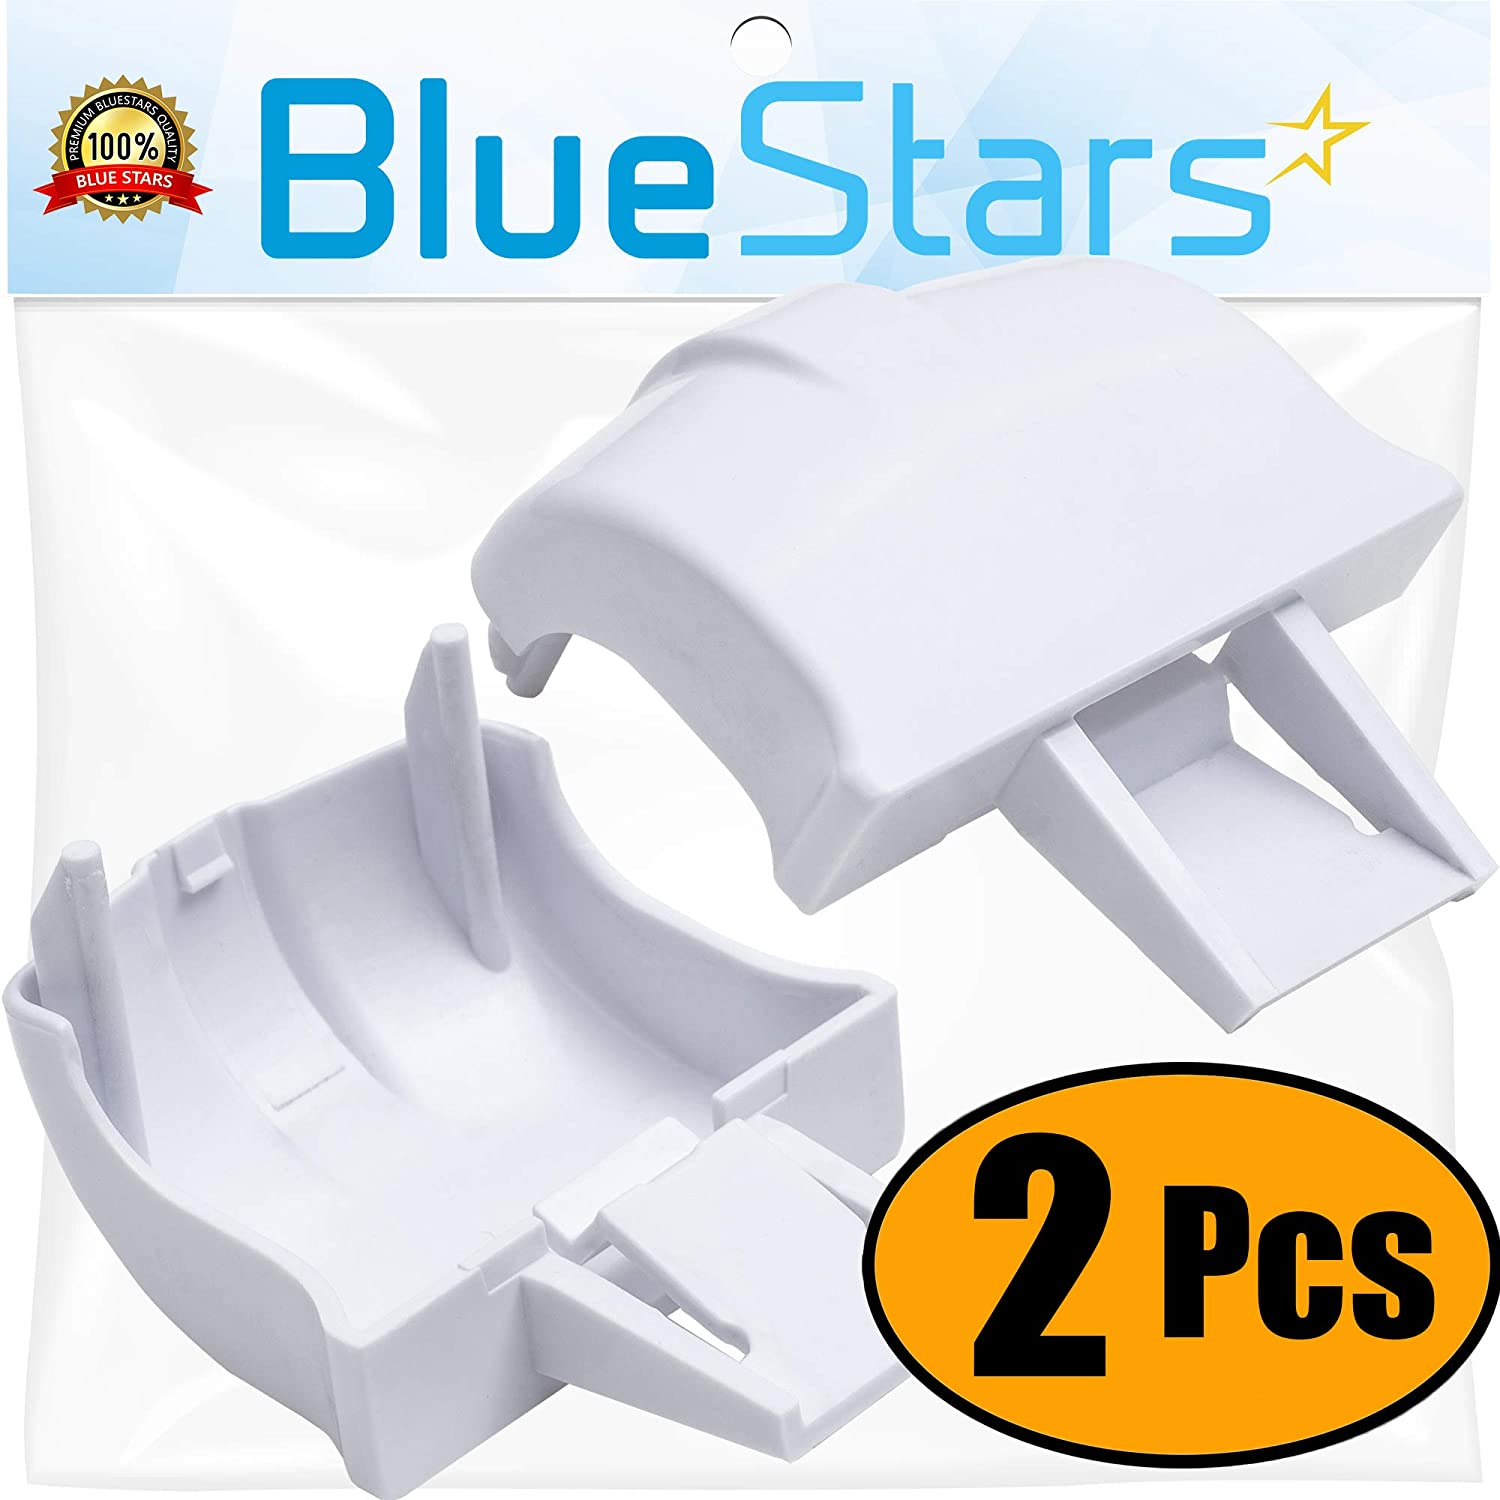 Ultra Durable WR2X8345 Refrigerator Door Bar End Cap Replacement Part by Blue Stars - Exact Fit for GE Refrigerators - Replaces WR02X8345 WR71X2054 WR2X7617 - PACK OF 2